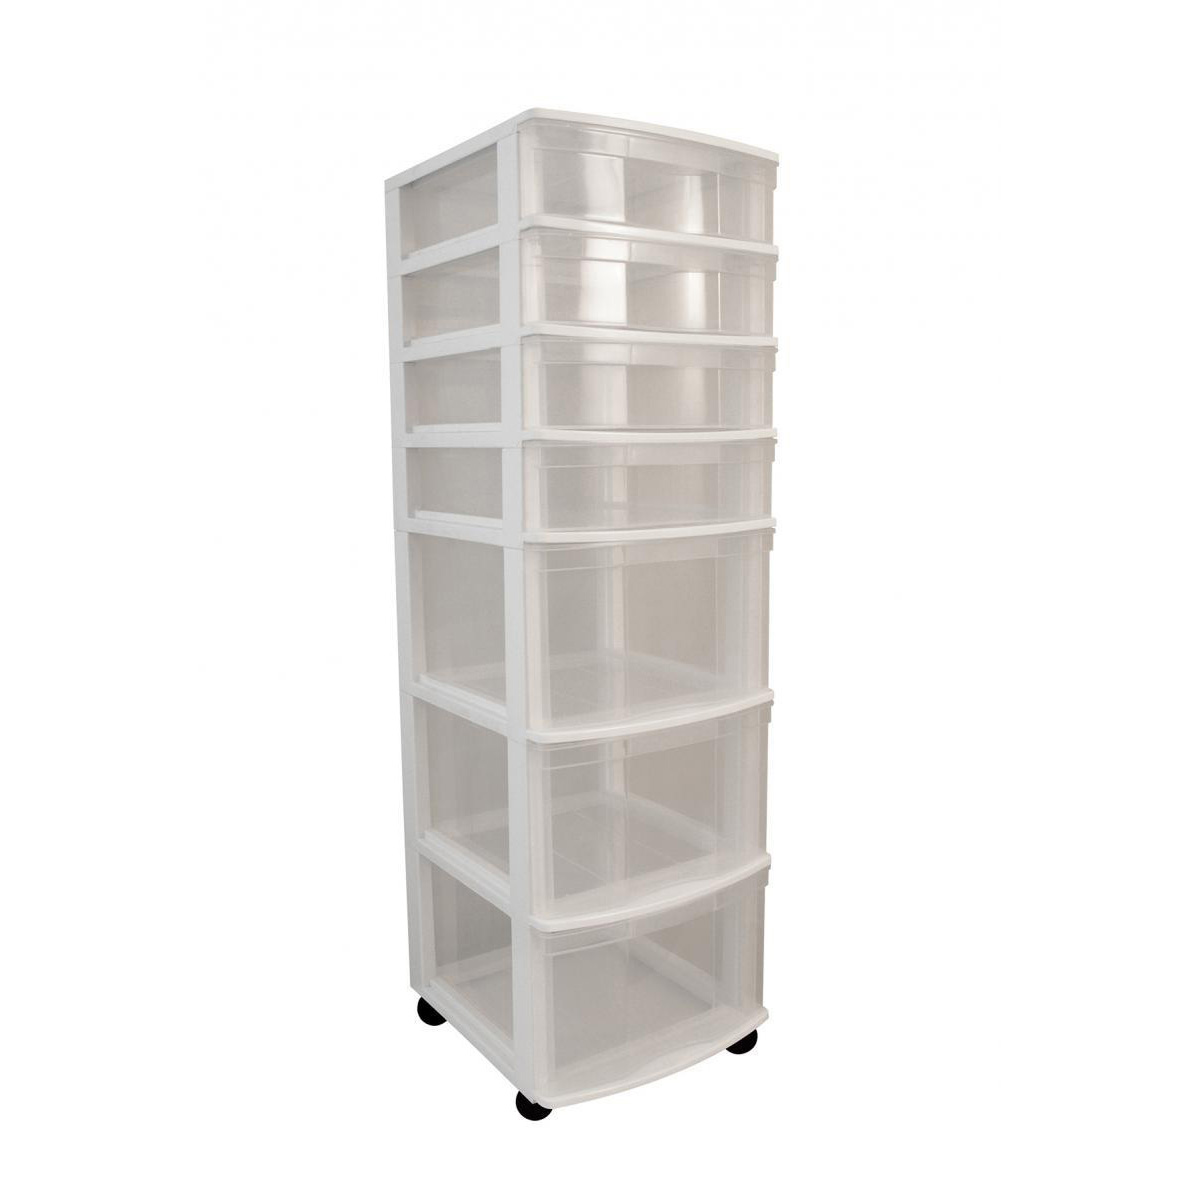 7-Drawer Plastic Organizer